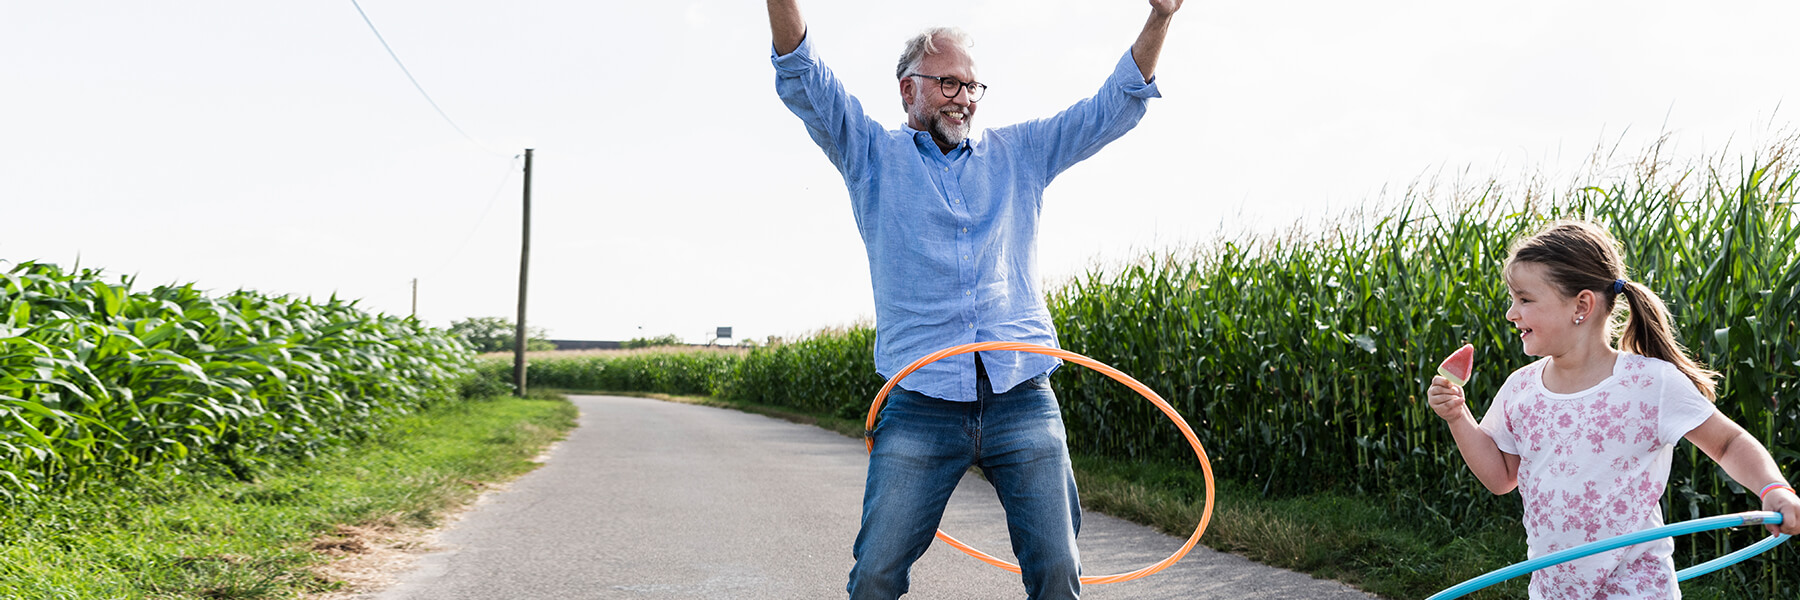 Father with gray beard and glasses raises his hands and young daughter eating a popsicle try to hula hoop on a paved pathway